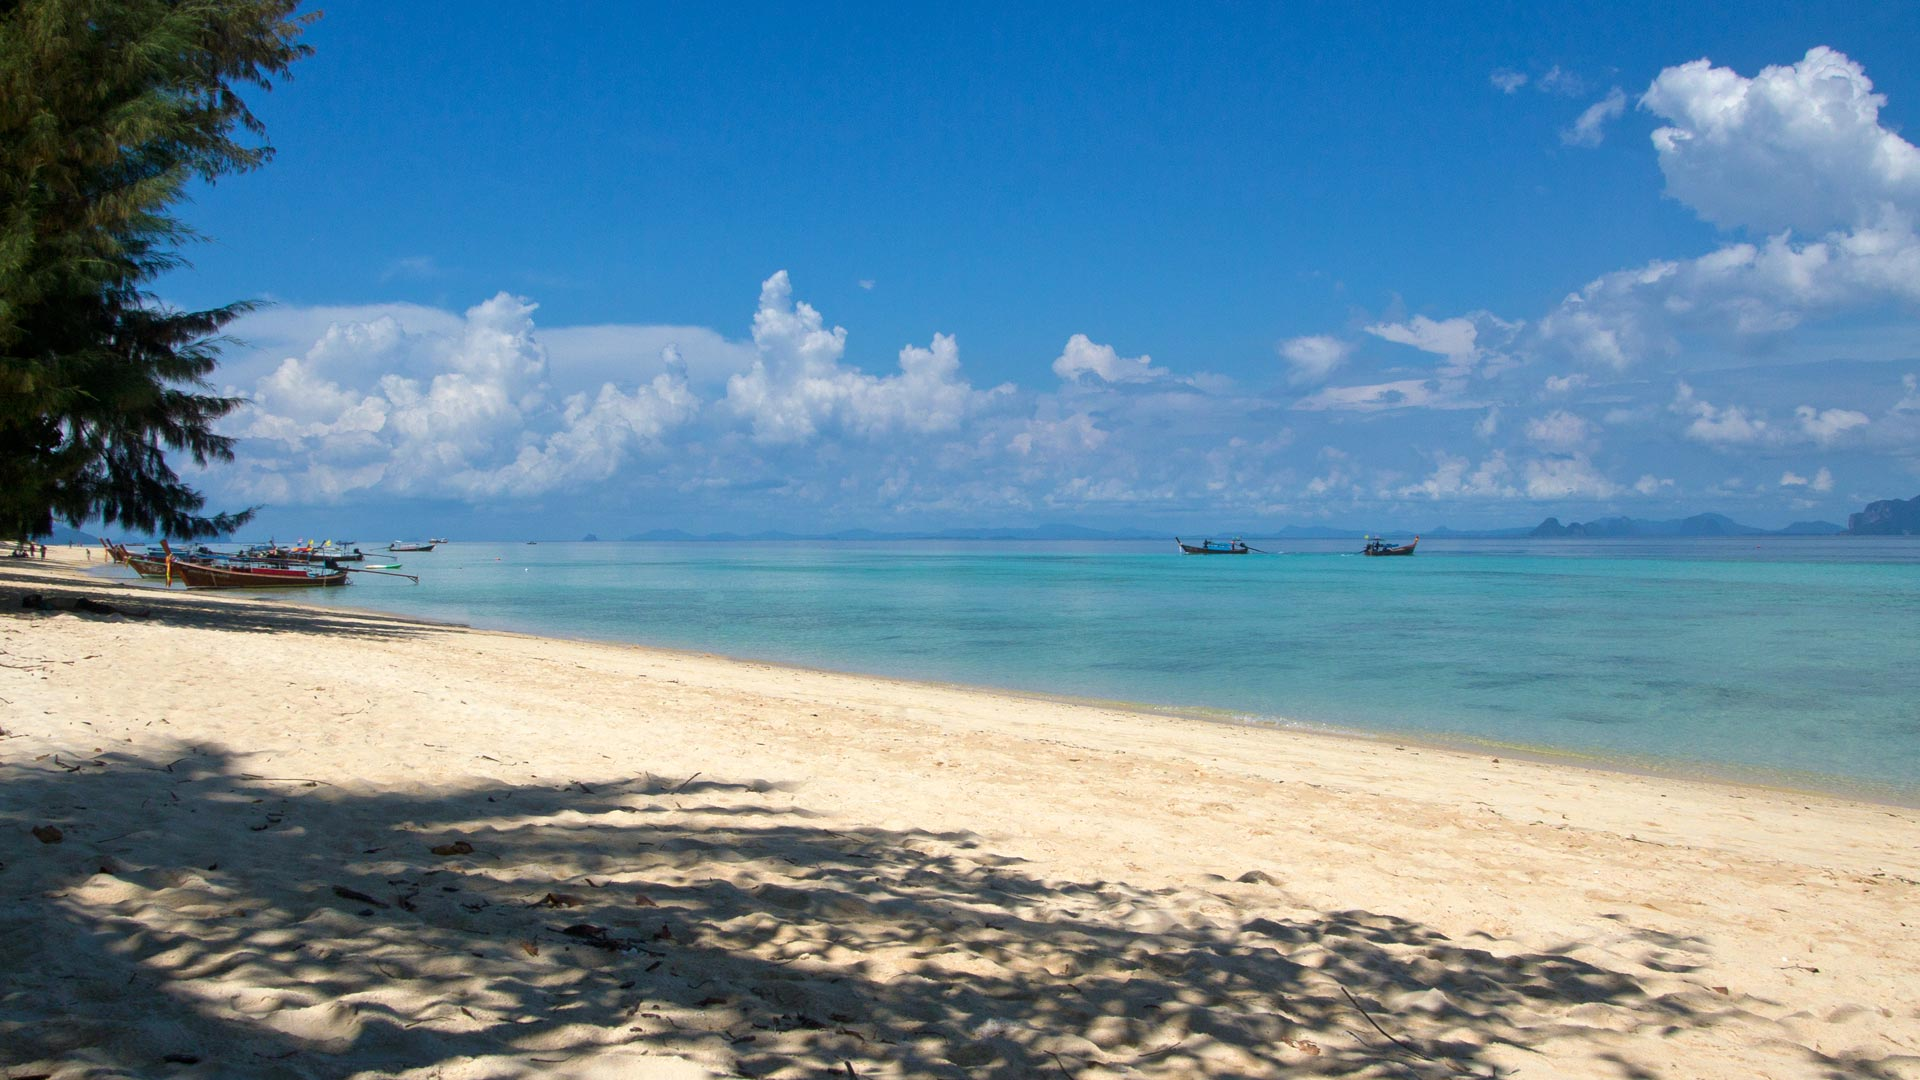 koh ngai a day trip to paradise travel blog about